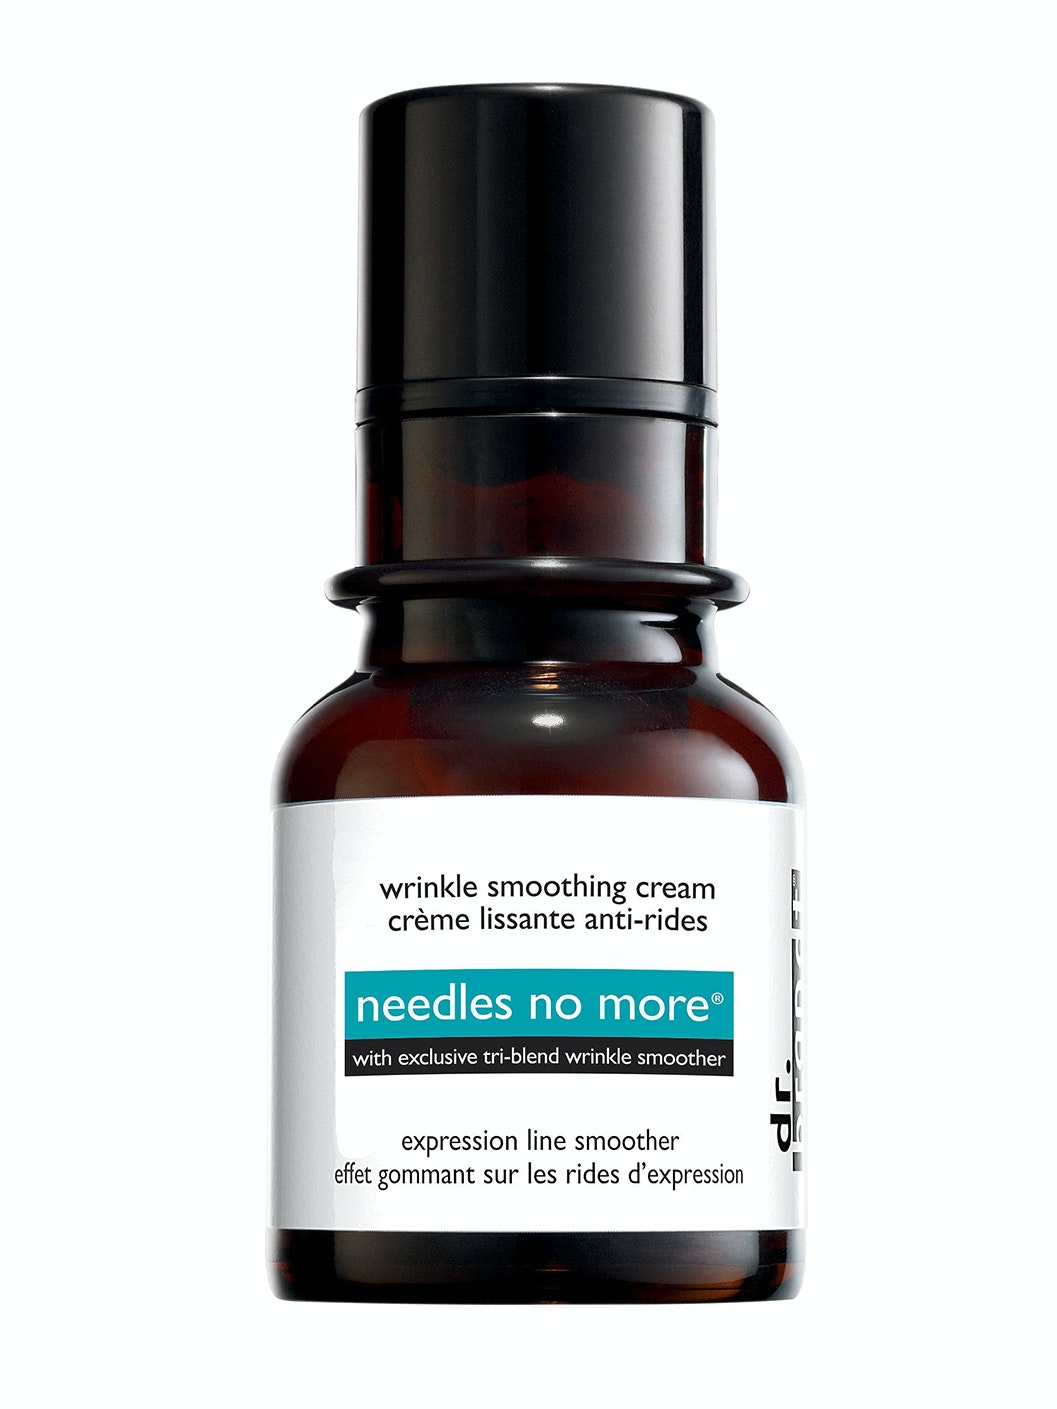 Dr. Brandt Needles No More Wrinkle Smoothing Cream